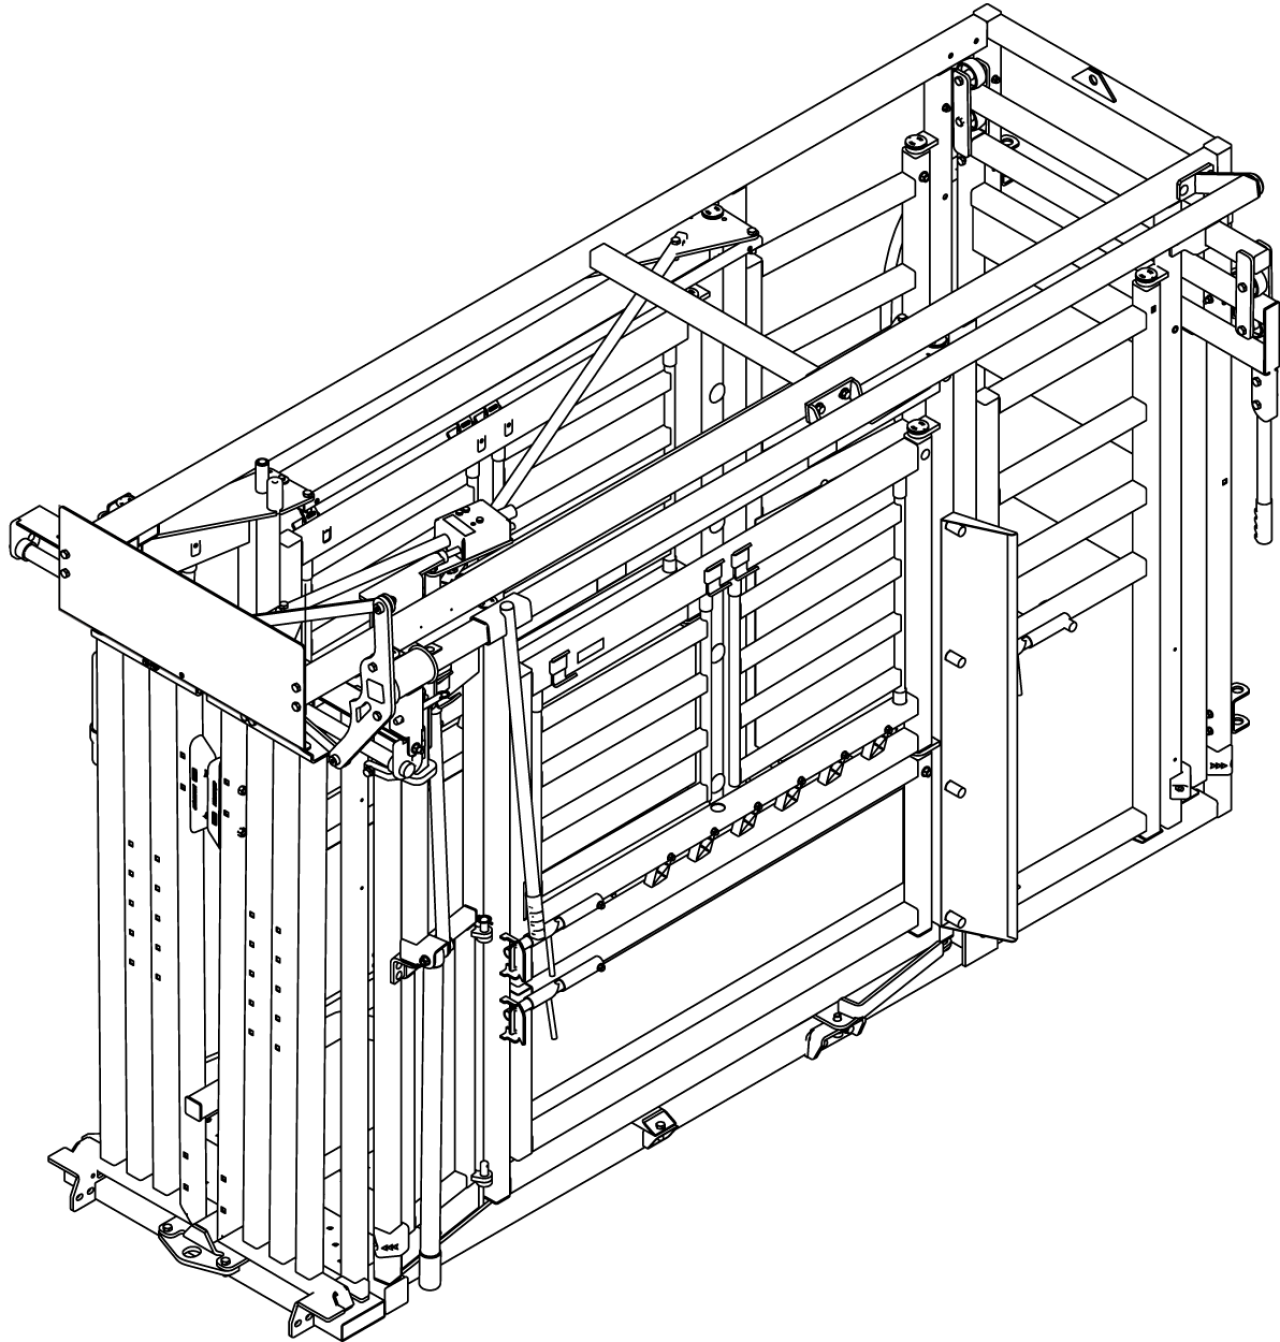 CAD Drawing of the Q-Catch 74 series squeeze chute